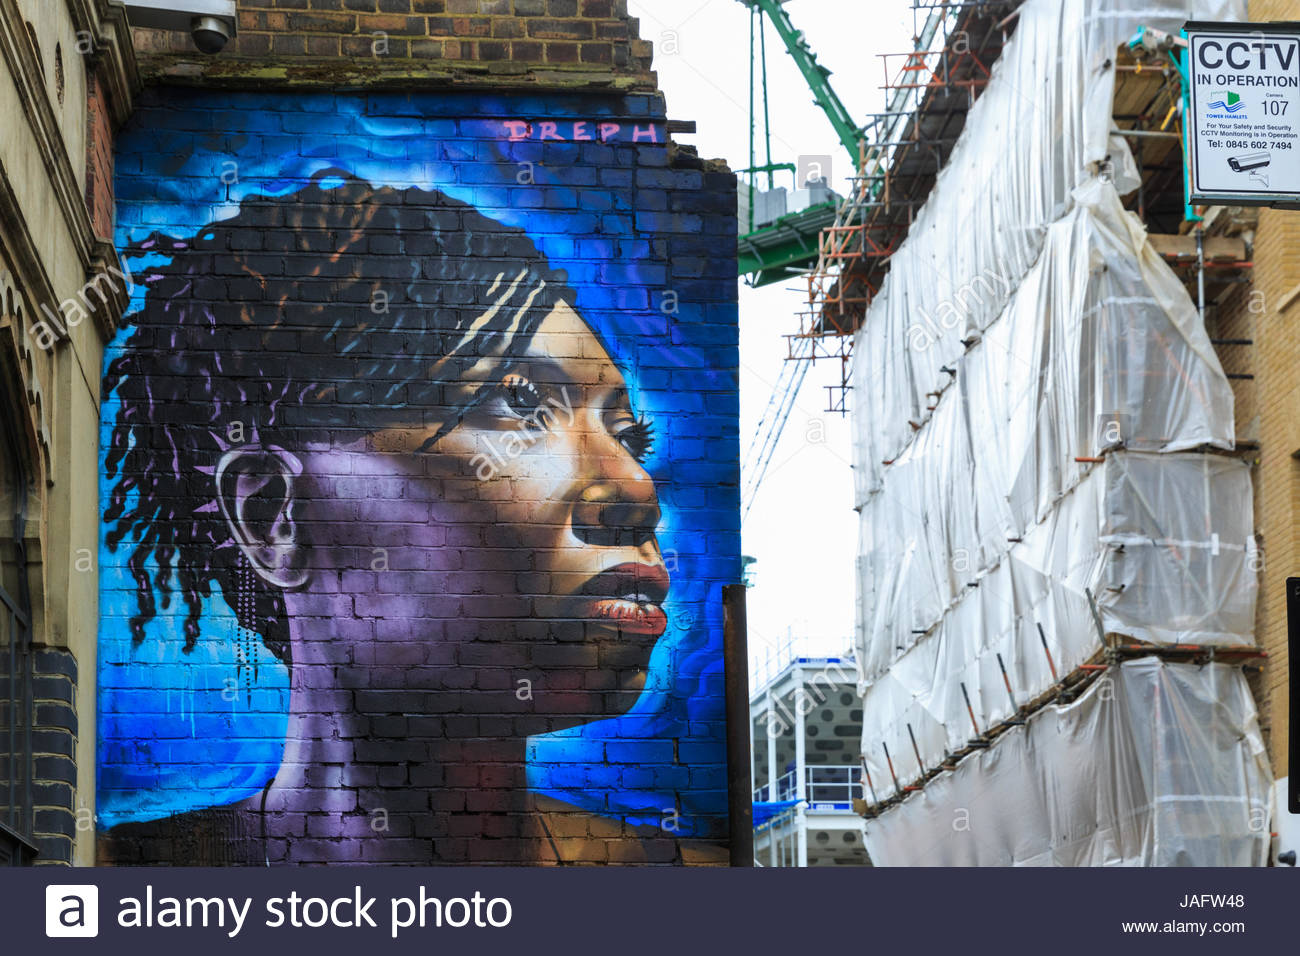 street-art-mural-of-black-female-tracy-b